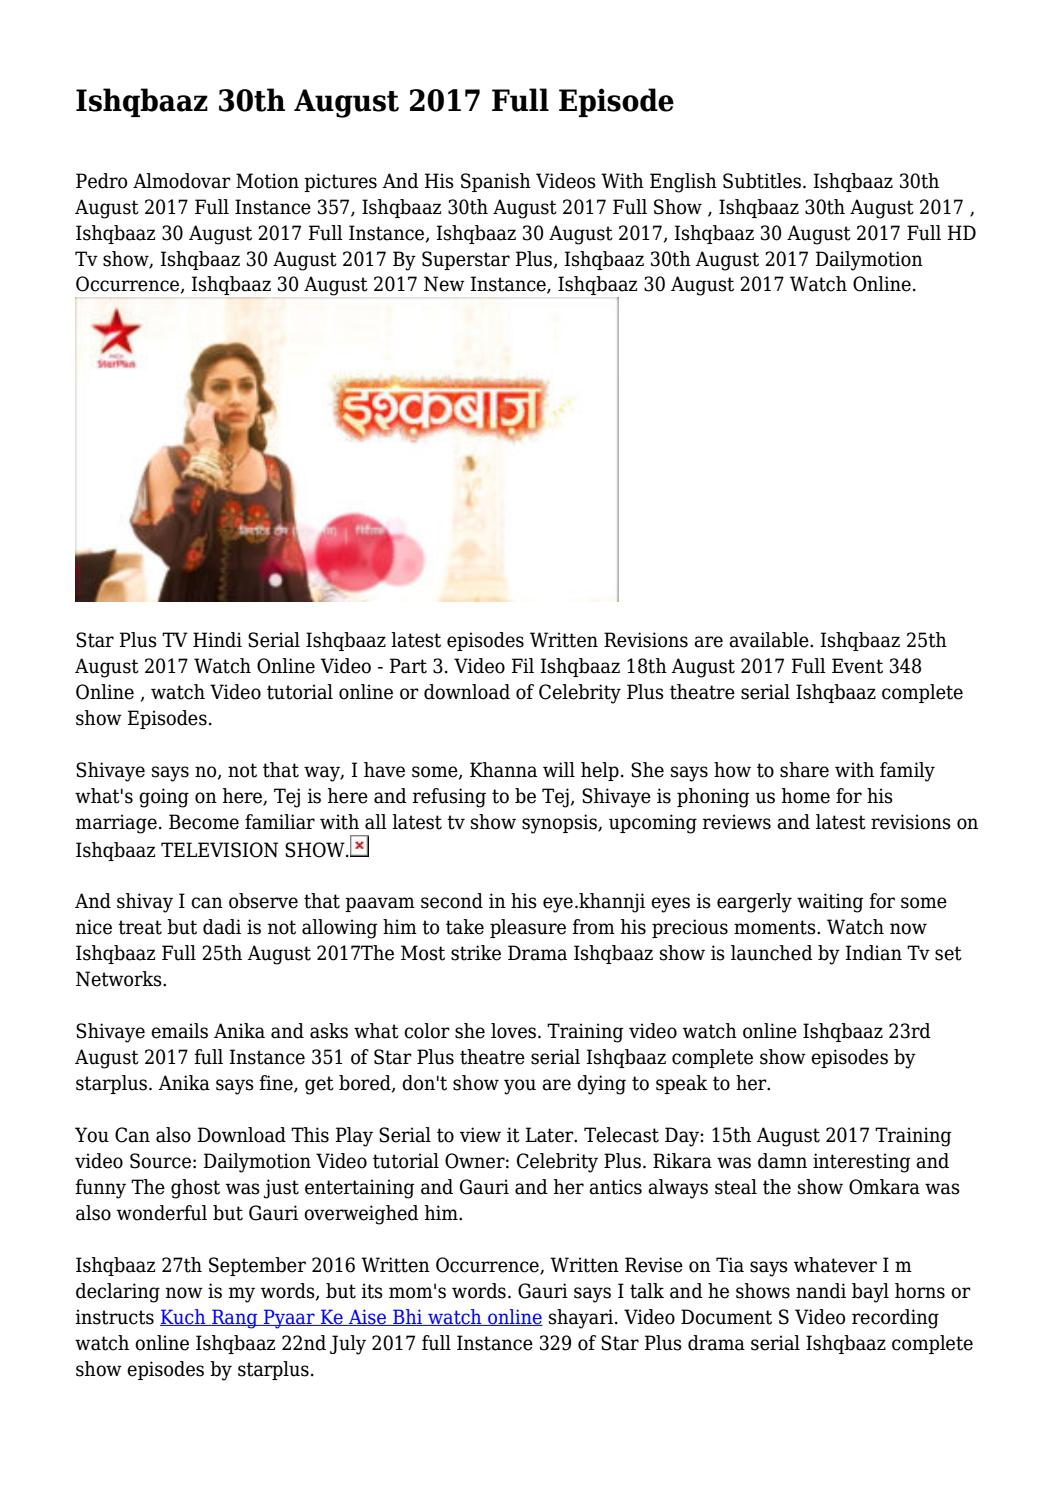 Ishqbaaz 30th August 2017 Full Episode    by calebjames178